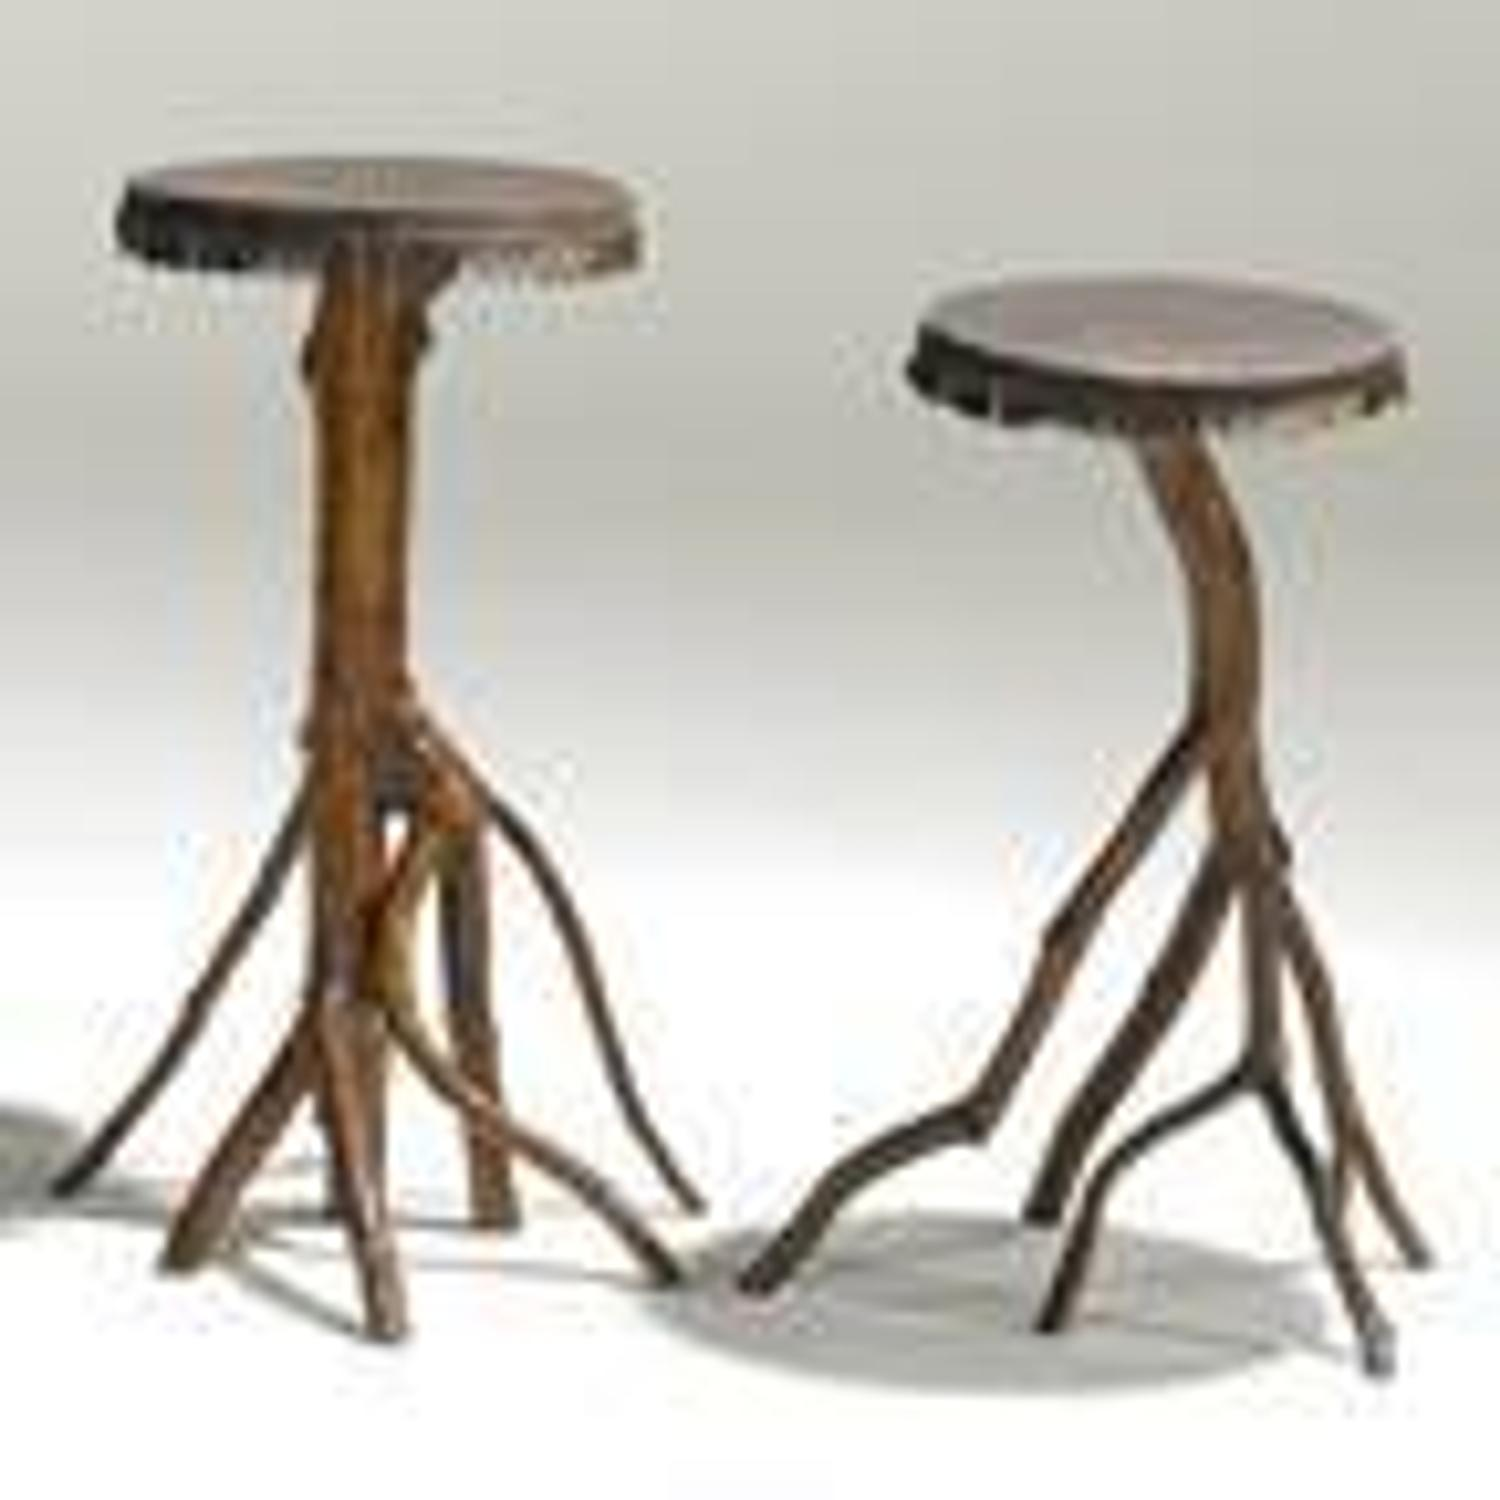 Arts and crafts movement furniture - Arts And Crafts Movement Furniture From Vancroft Mansion Back On The